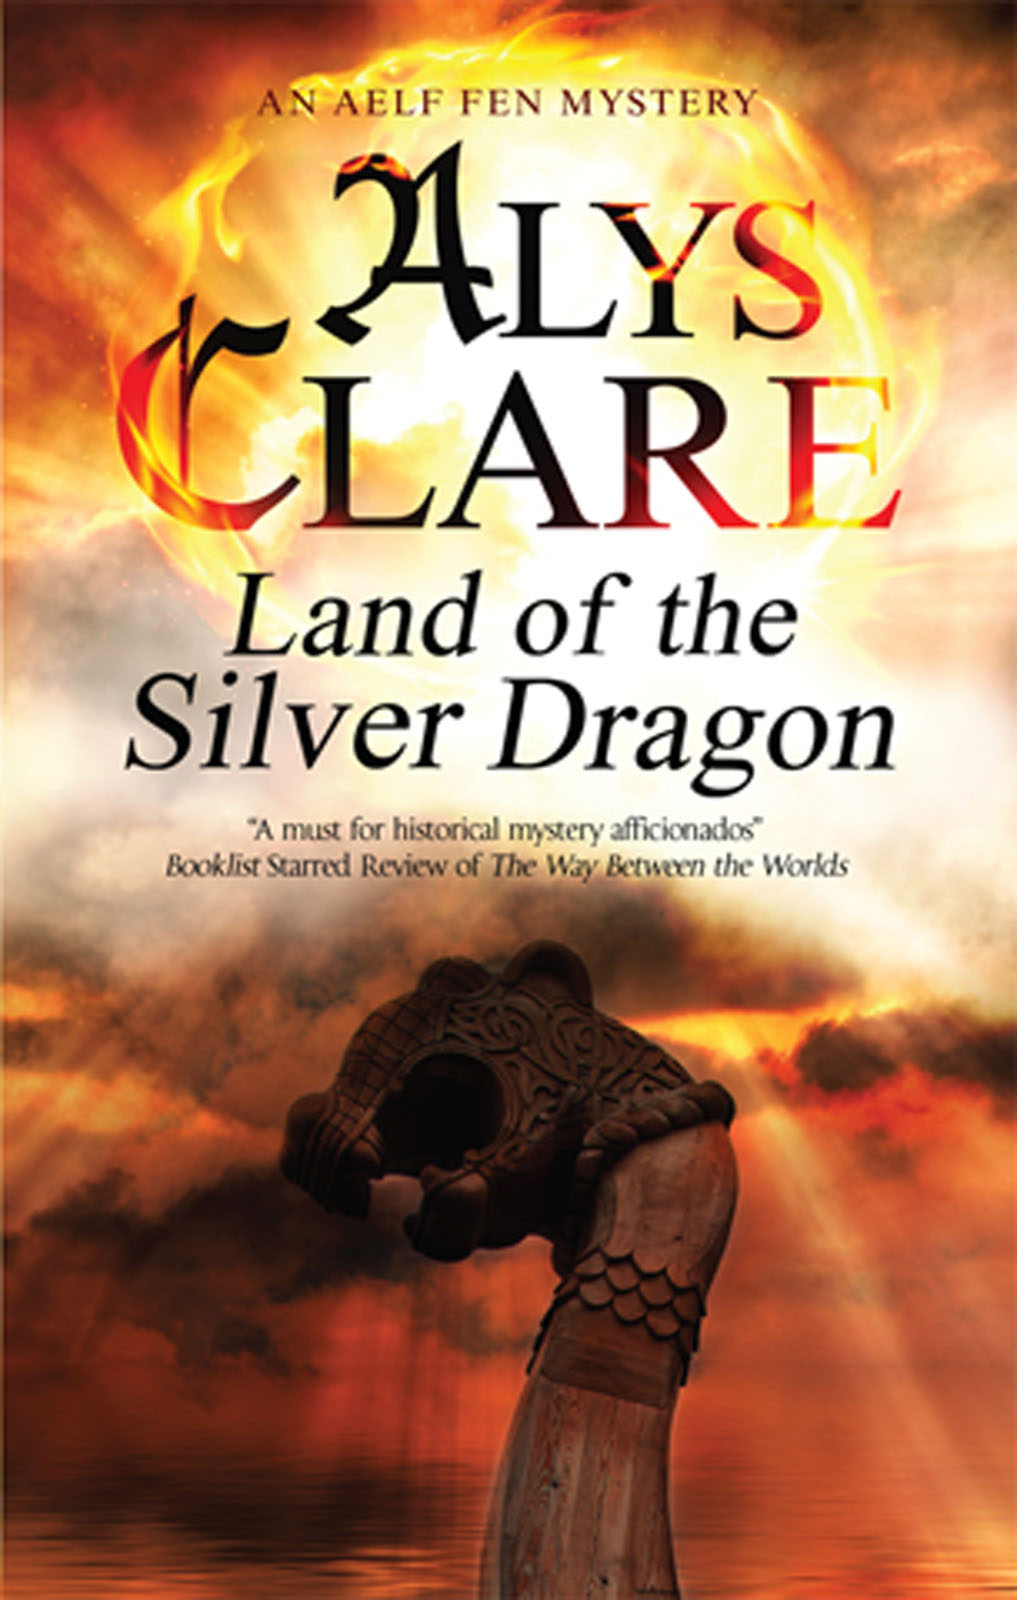 Clare Alys - Land of the Silver Dragon скачать бесплатно